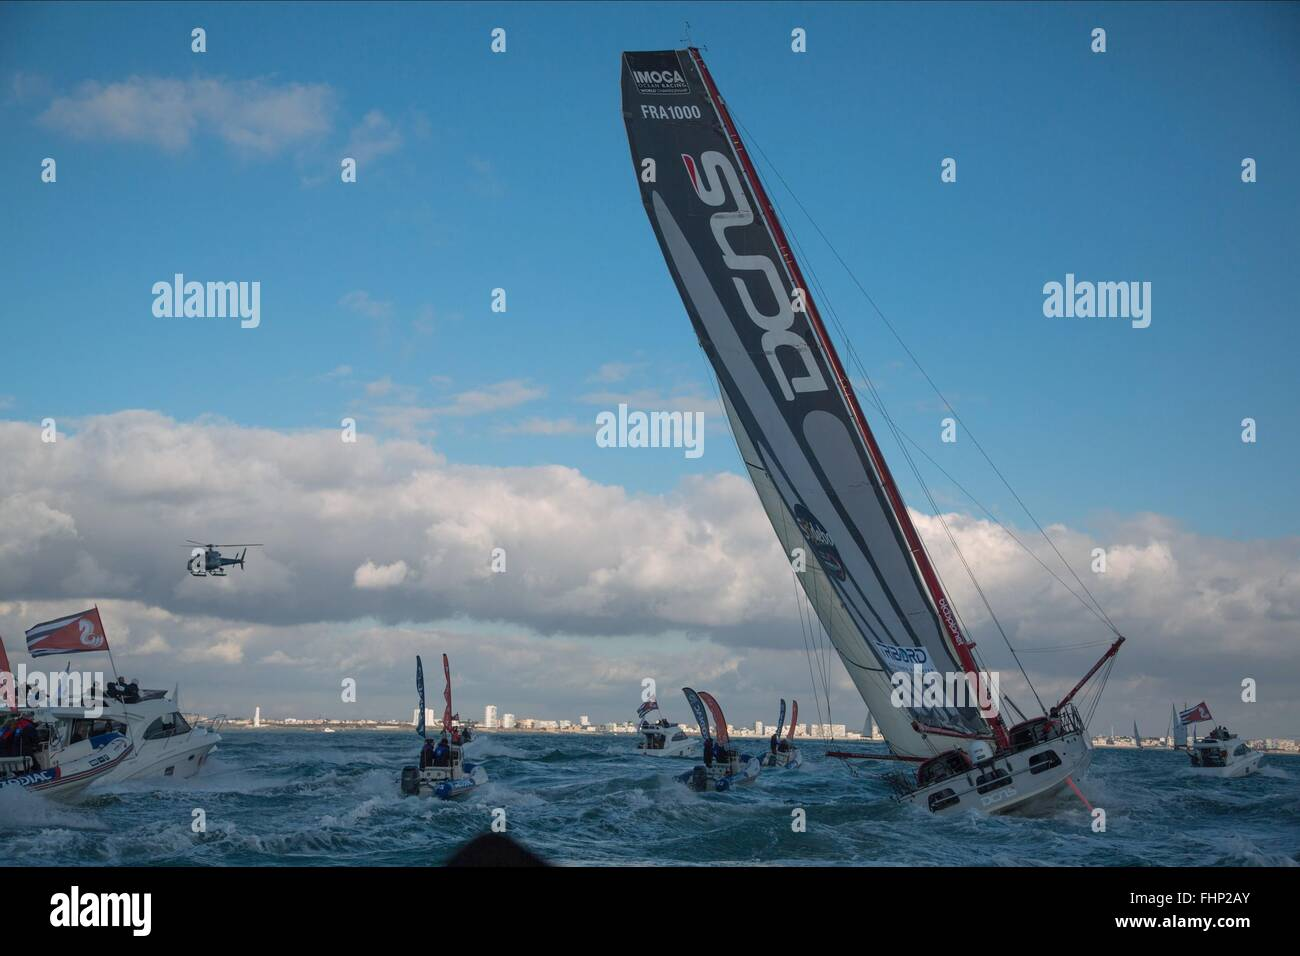 YACHT RACE TURNING TIDE; EN SOLITAIRE (2013) - Stock Image